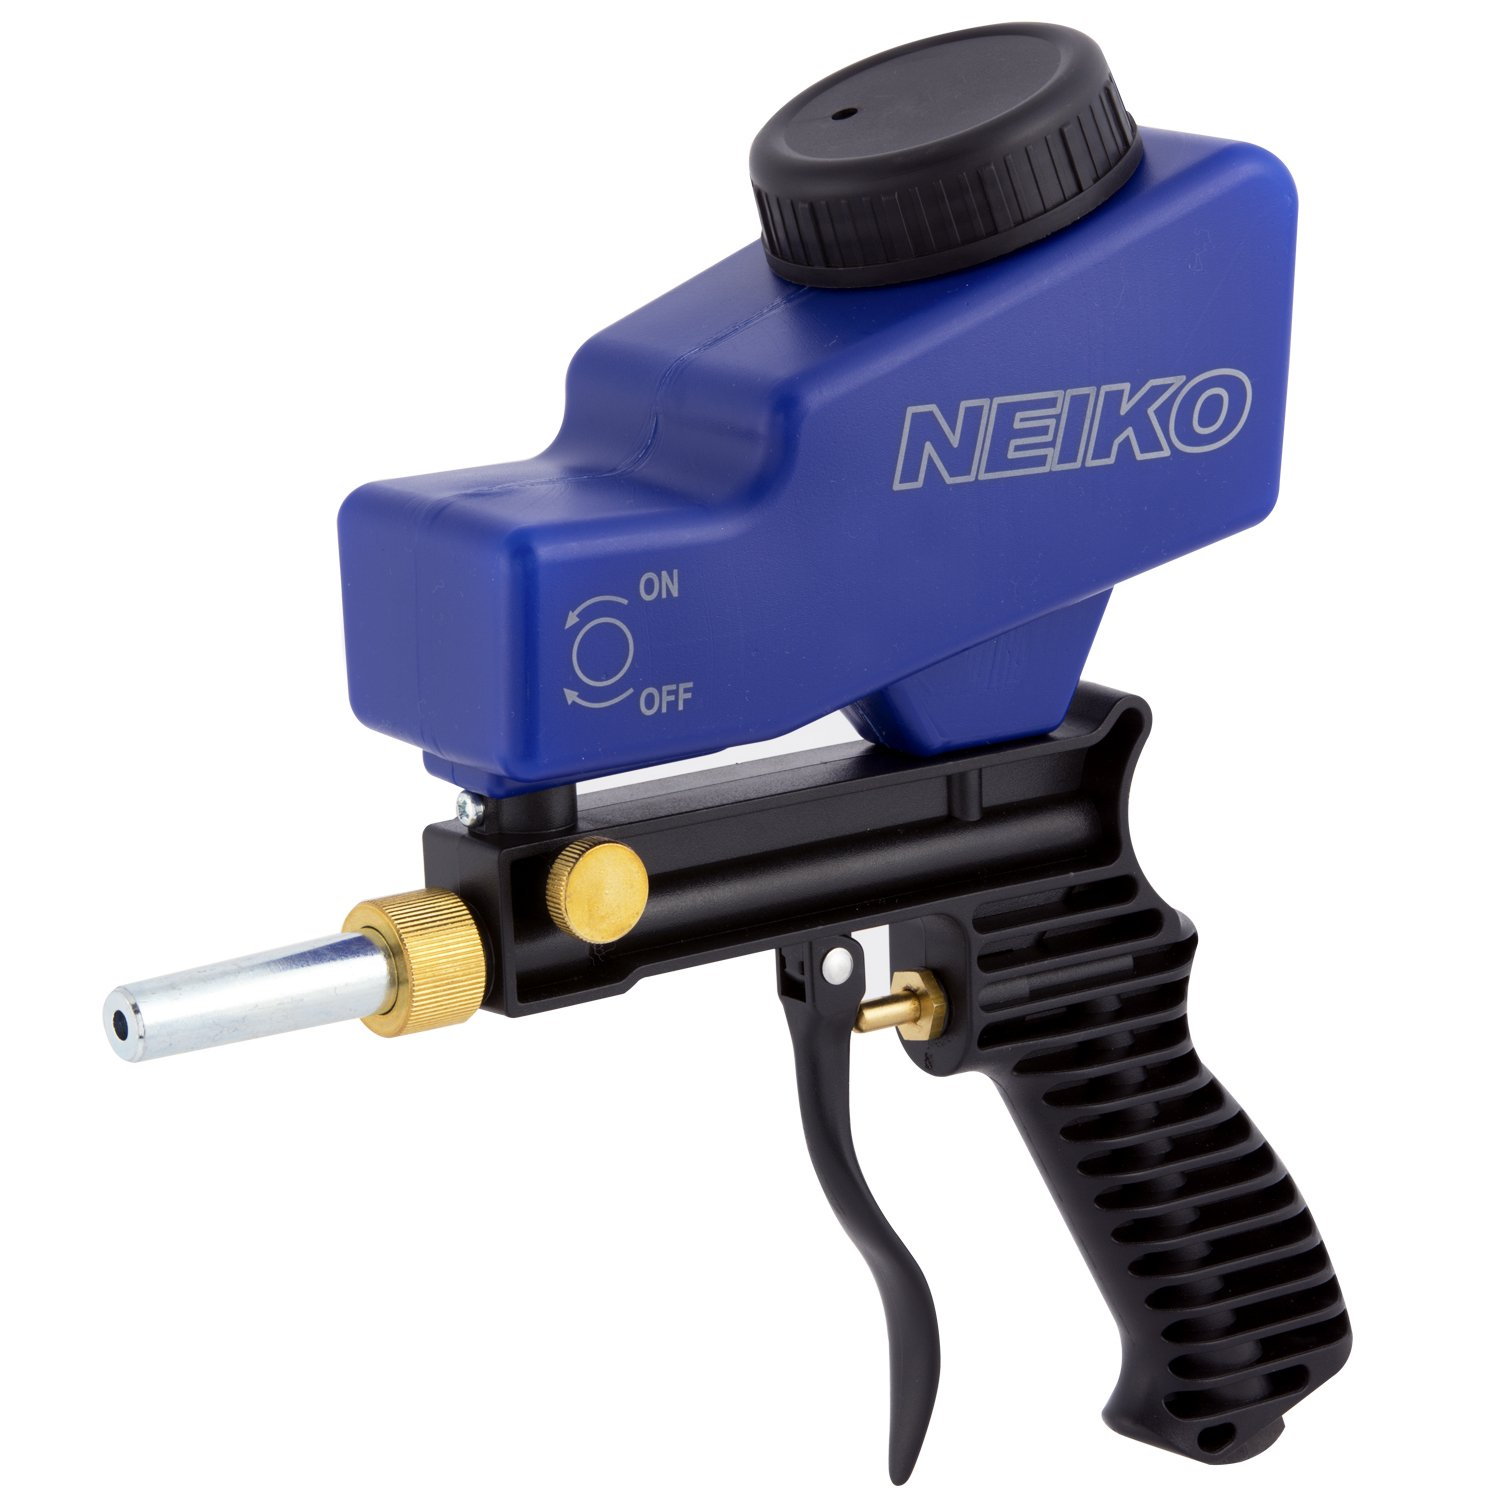 Neiko 30068A Abrasive Air Sand Blaster Handheld Gun | Replaceable Steel Nozzle | Various Media Compatible Gravity Feed Hopper